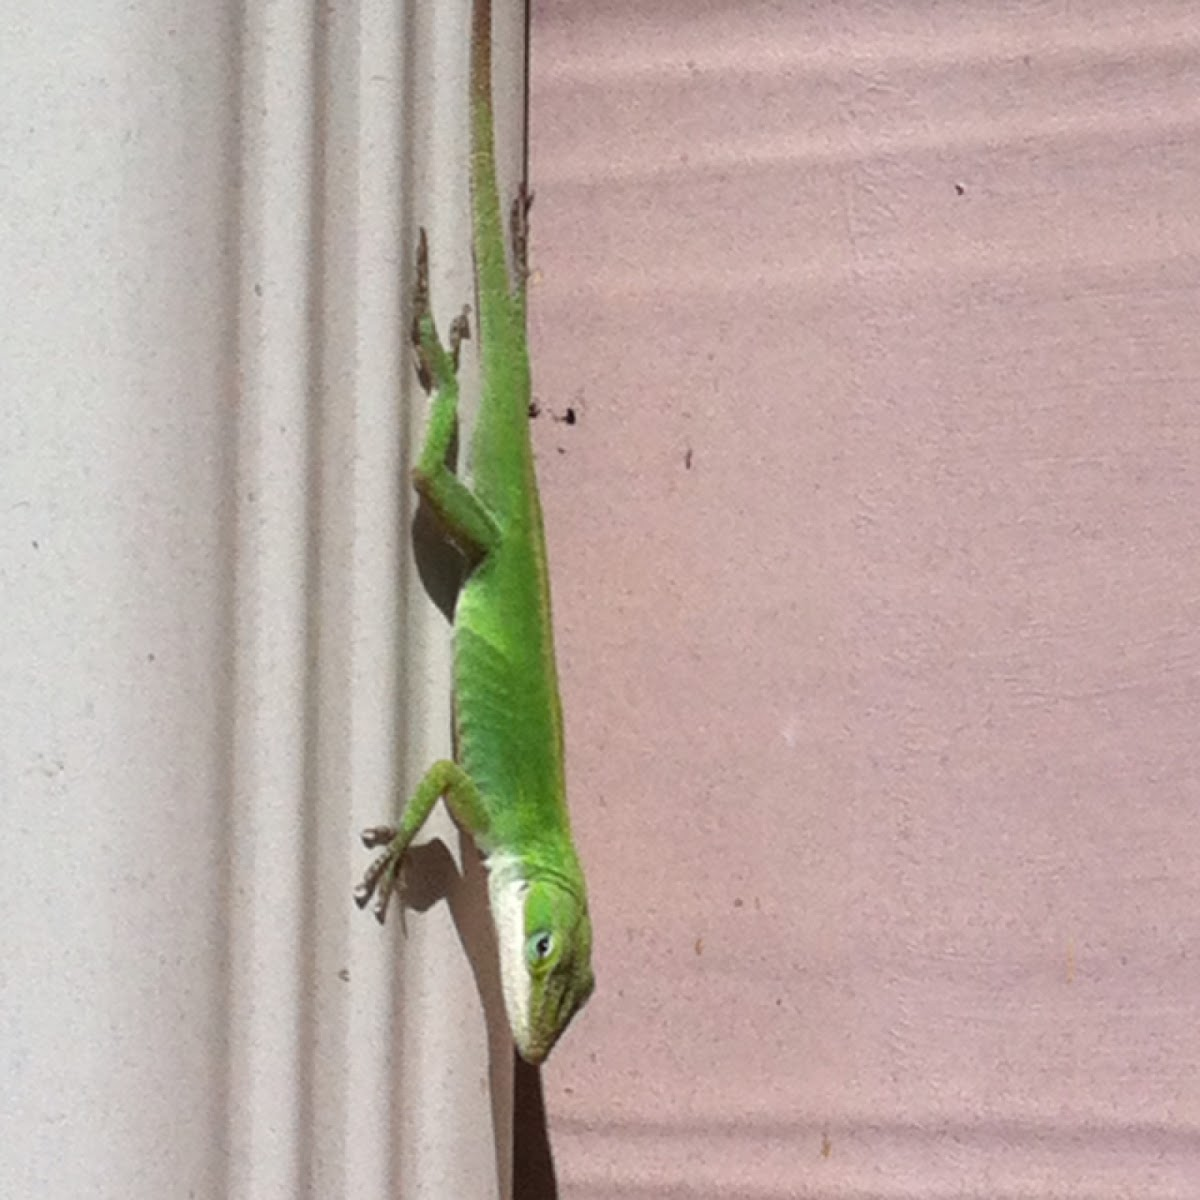 Green anole (Carolina anole)